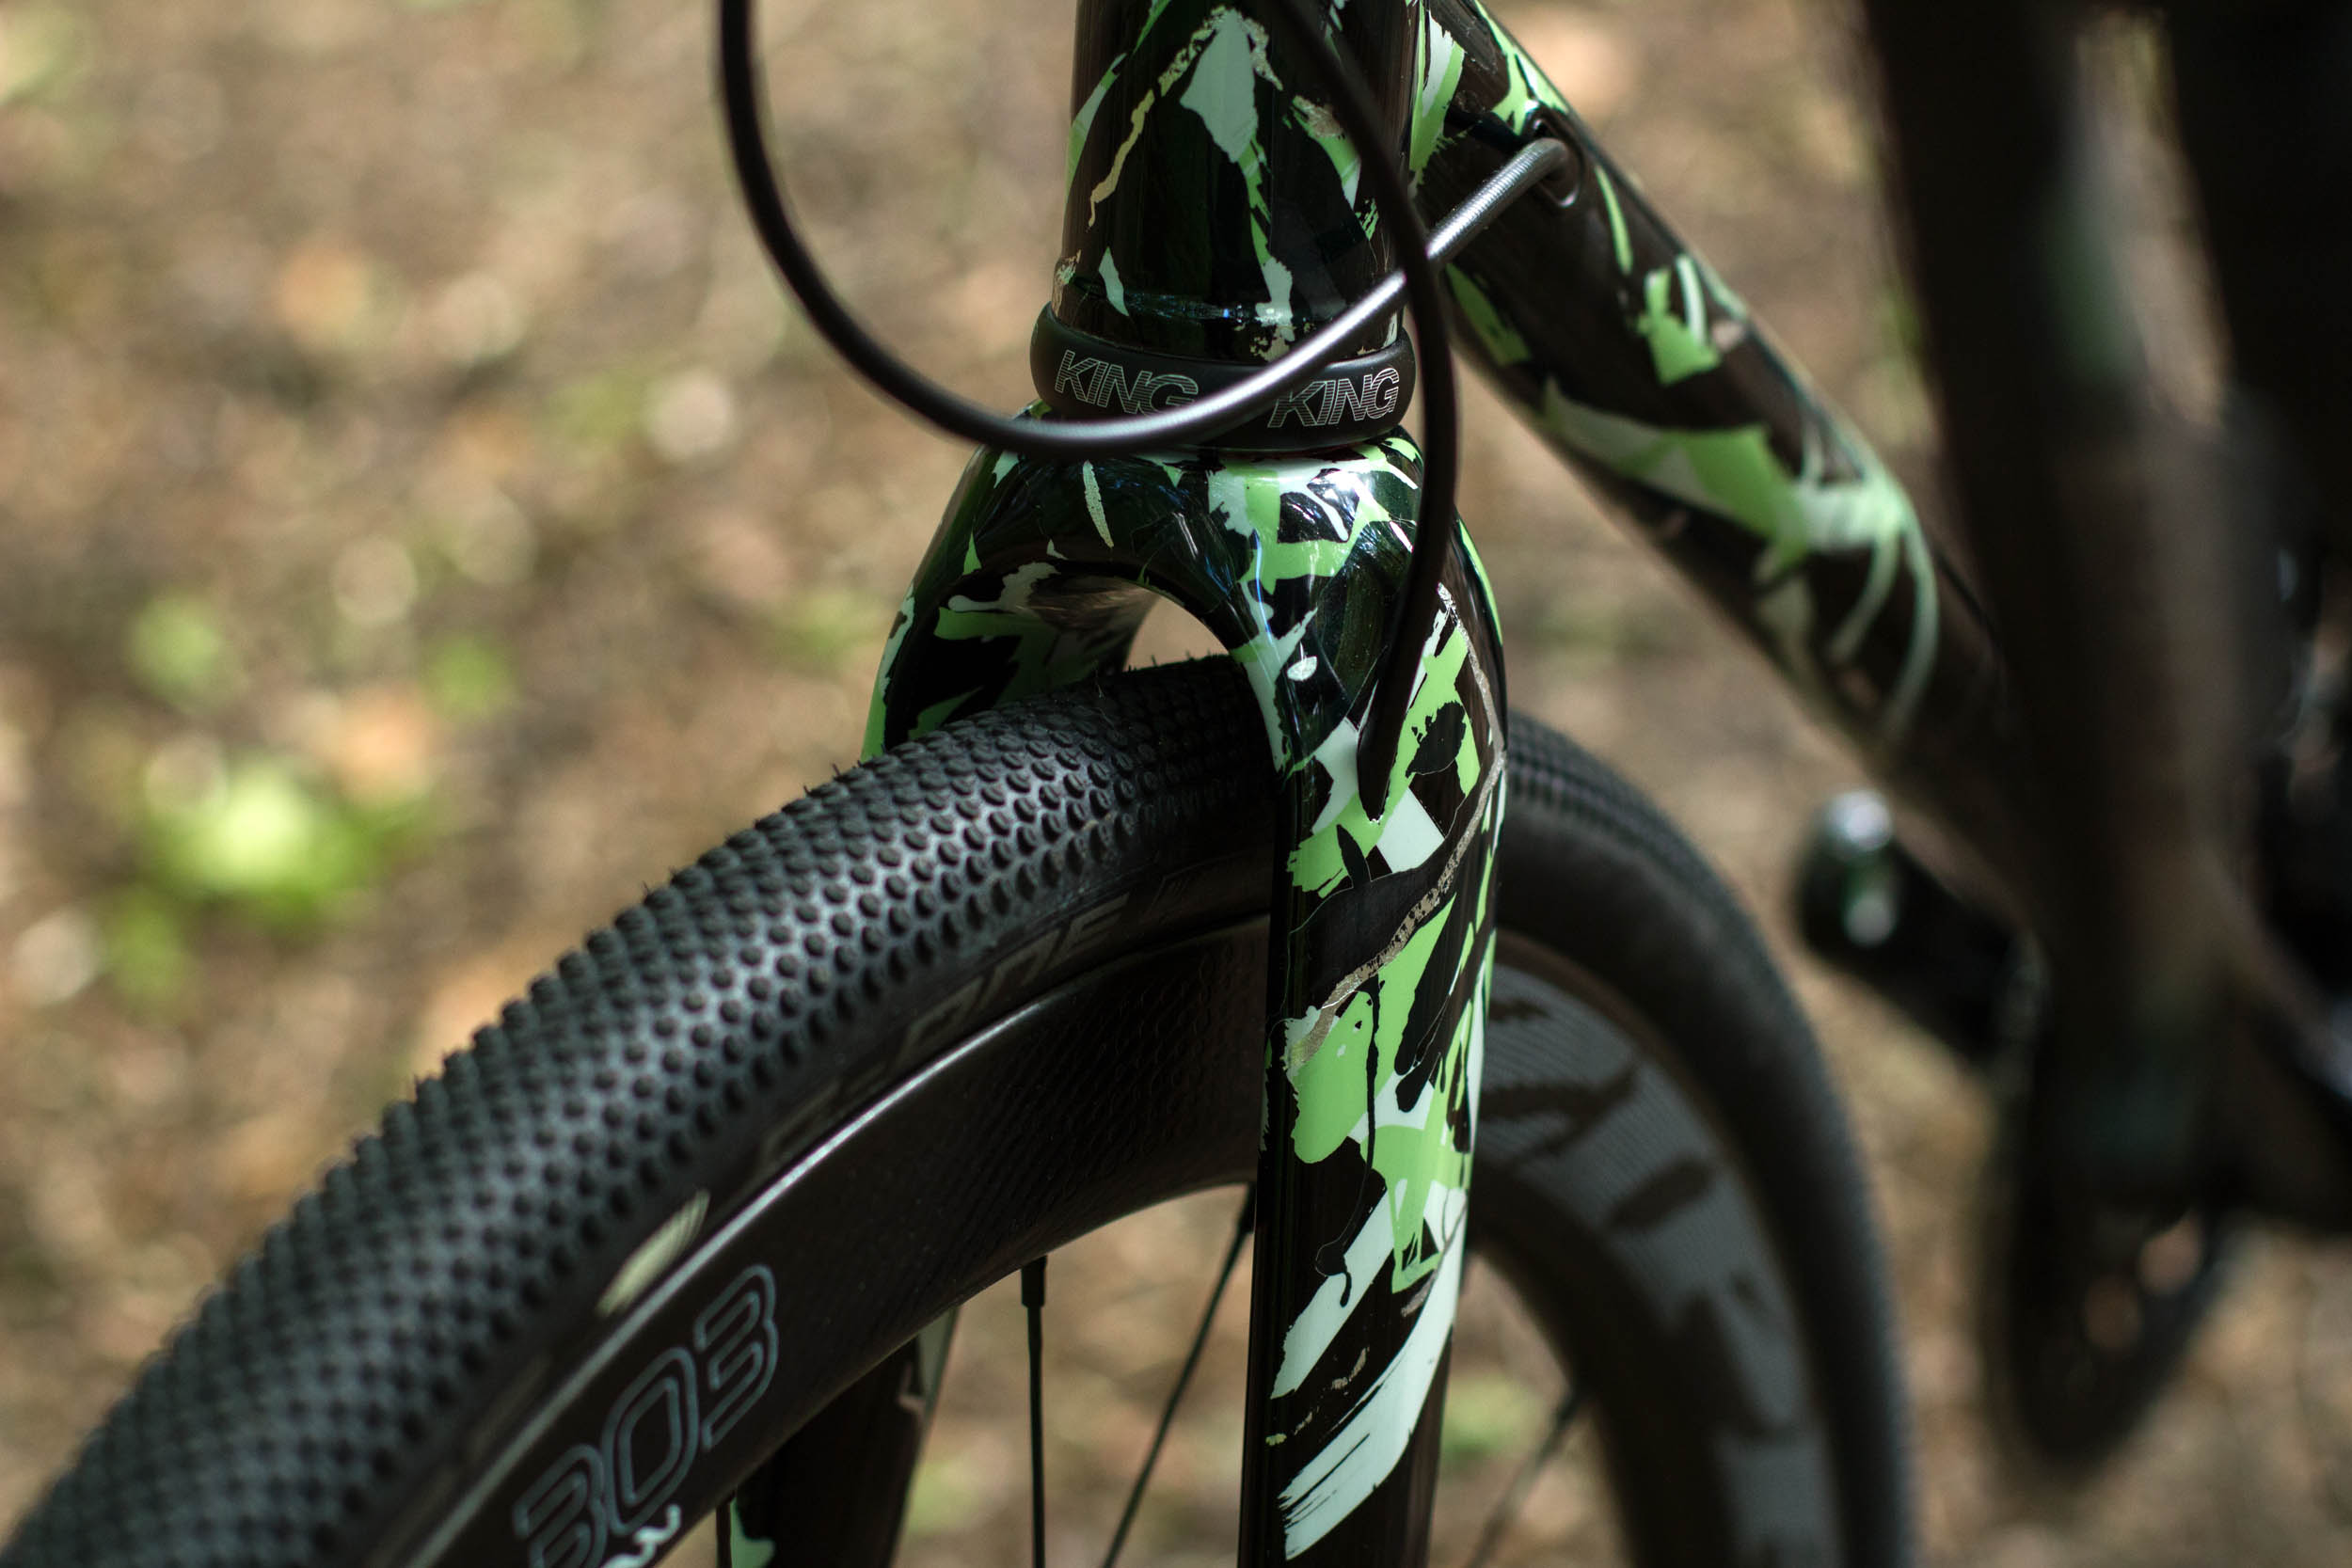 quirk_cycles_mamtor_3DPrinted_build_17.jpg